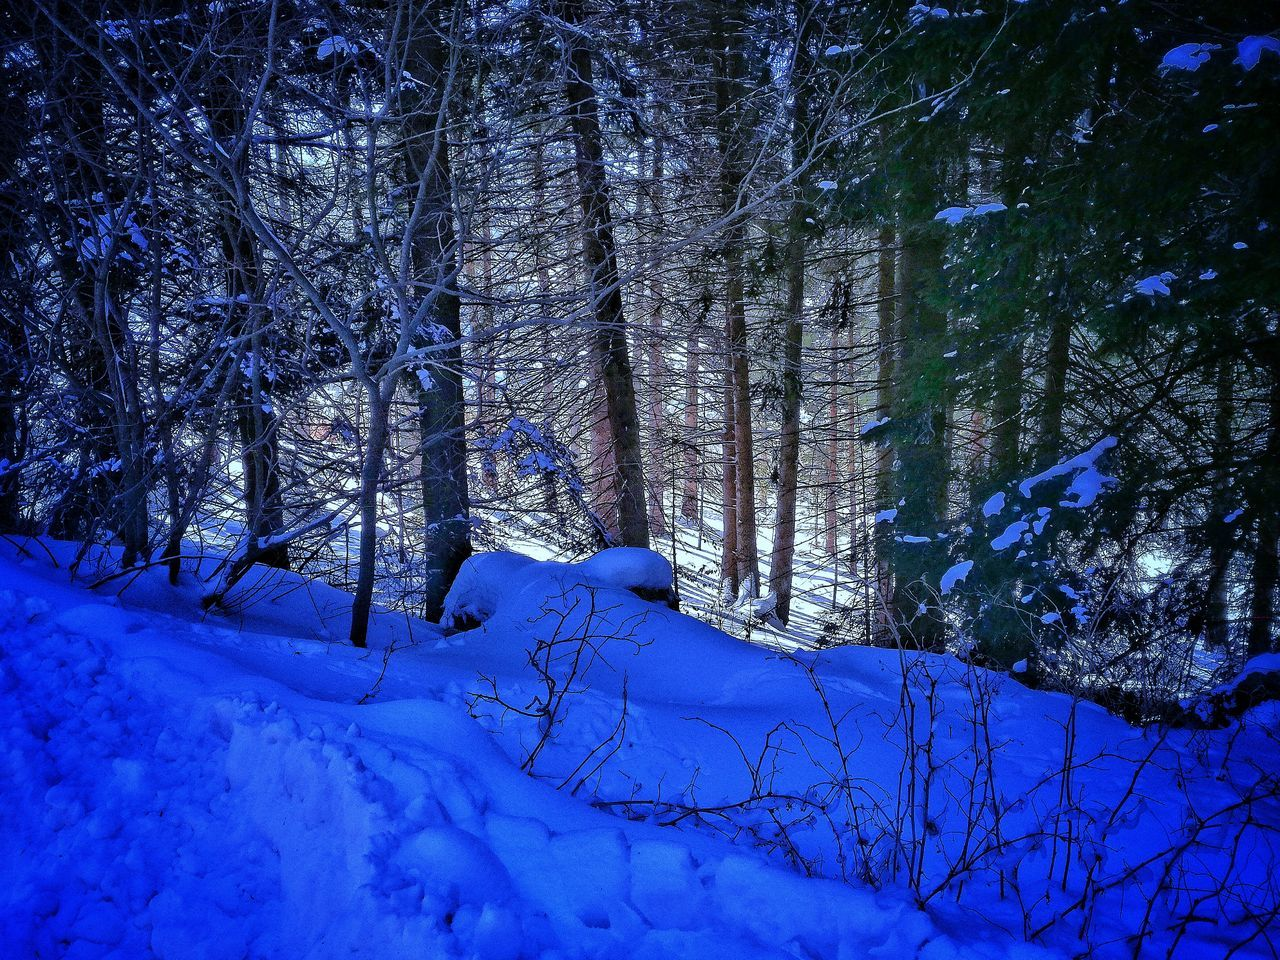 Gloomy forest Blue Snow Winter Tree No People Nature Cold Temperature Outdoors Beauty In Nature Sky Close-up Day Snowfall Forest Forest Photography Forestwalk Forest Path Forest Park Forest View Snowy Forest Snow ❄ Snowscape Snowy Trees Snowy Mountains Backgrounds Miles Away